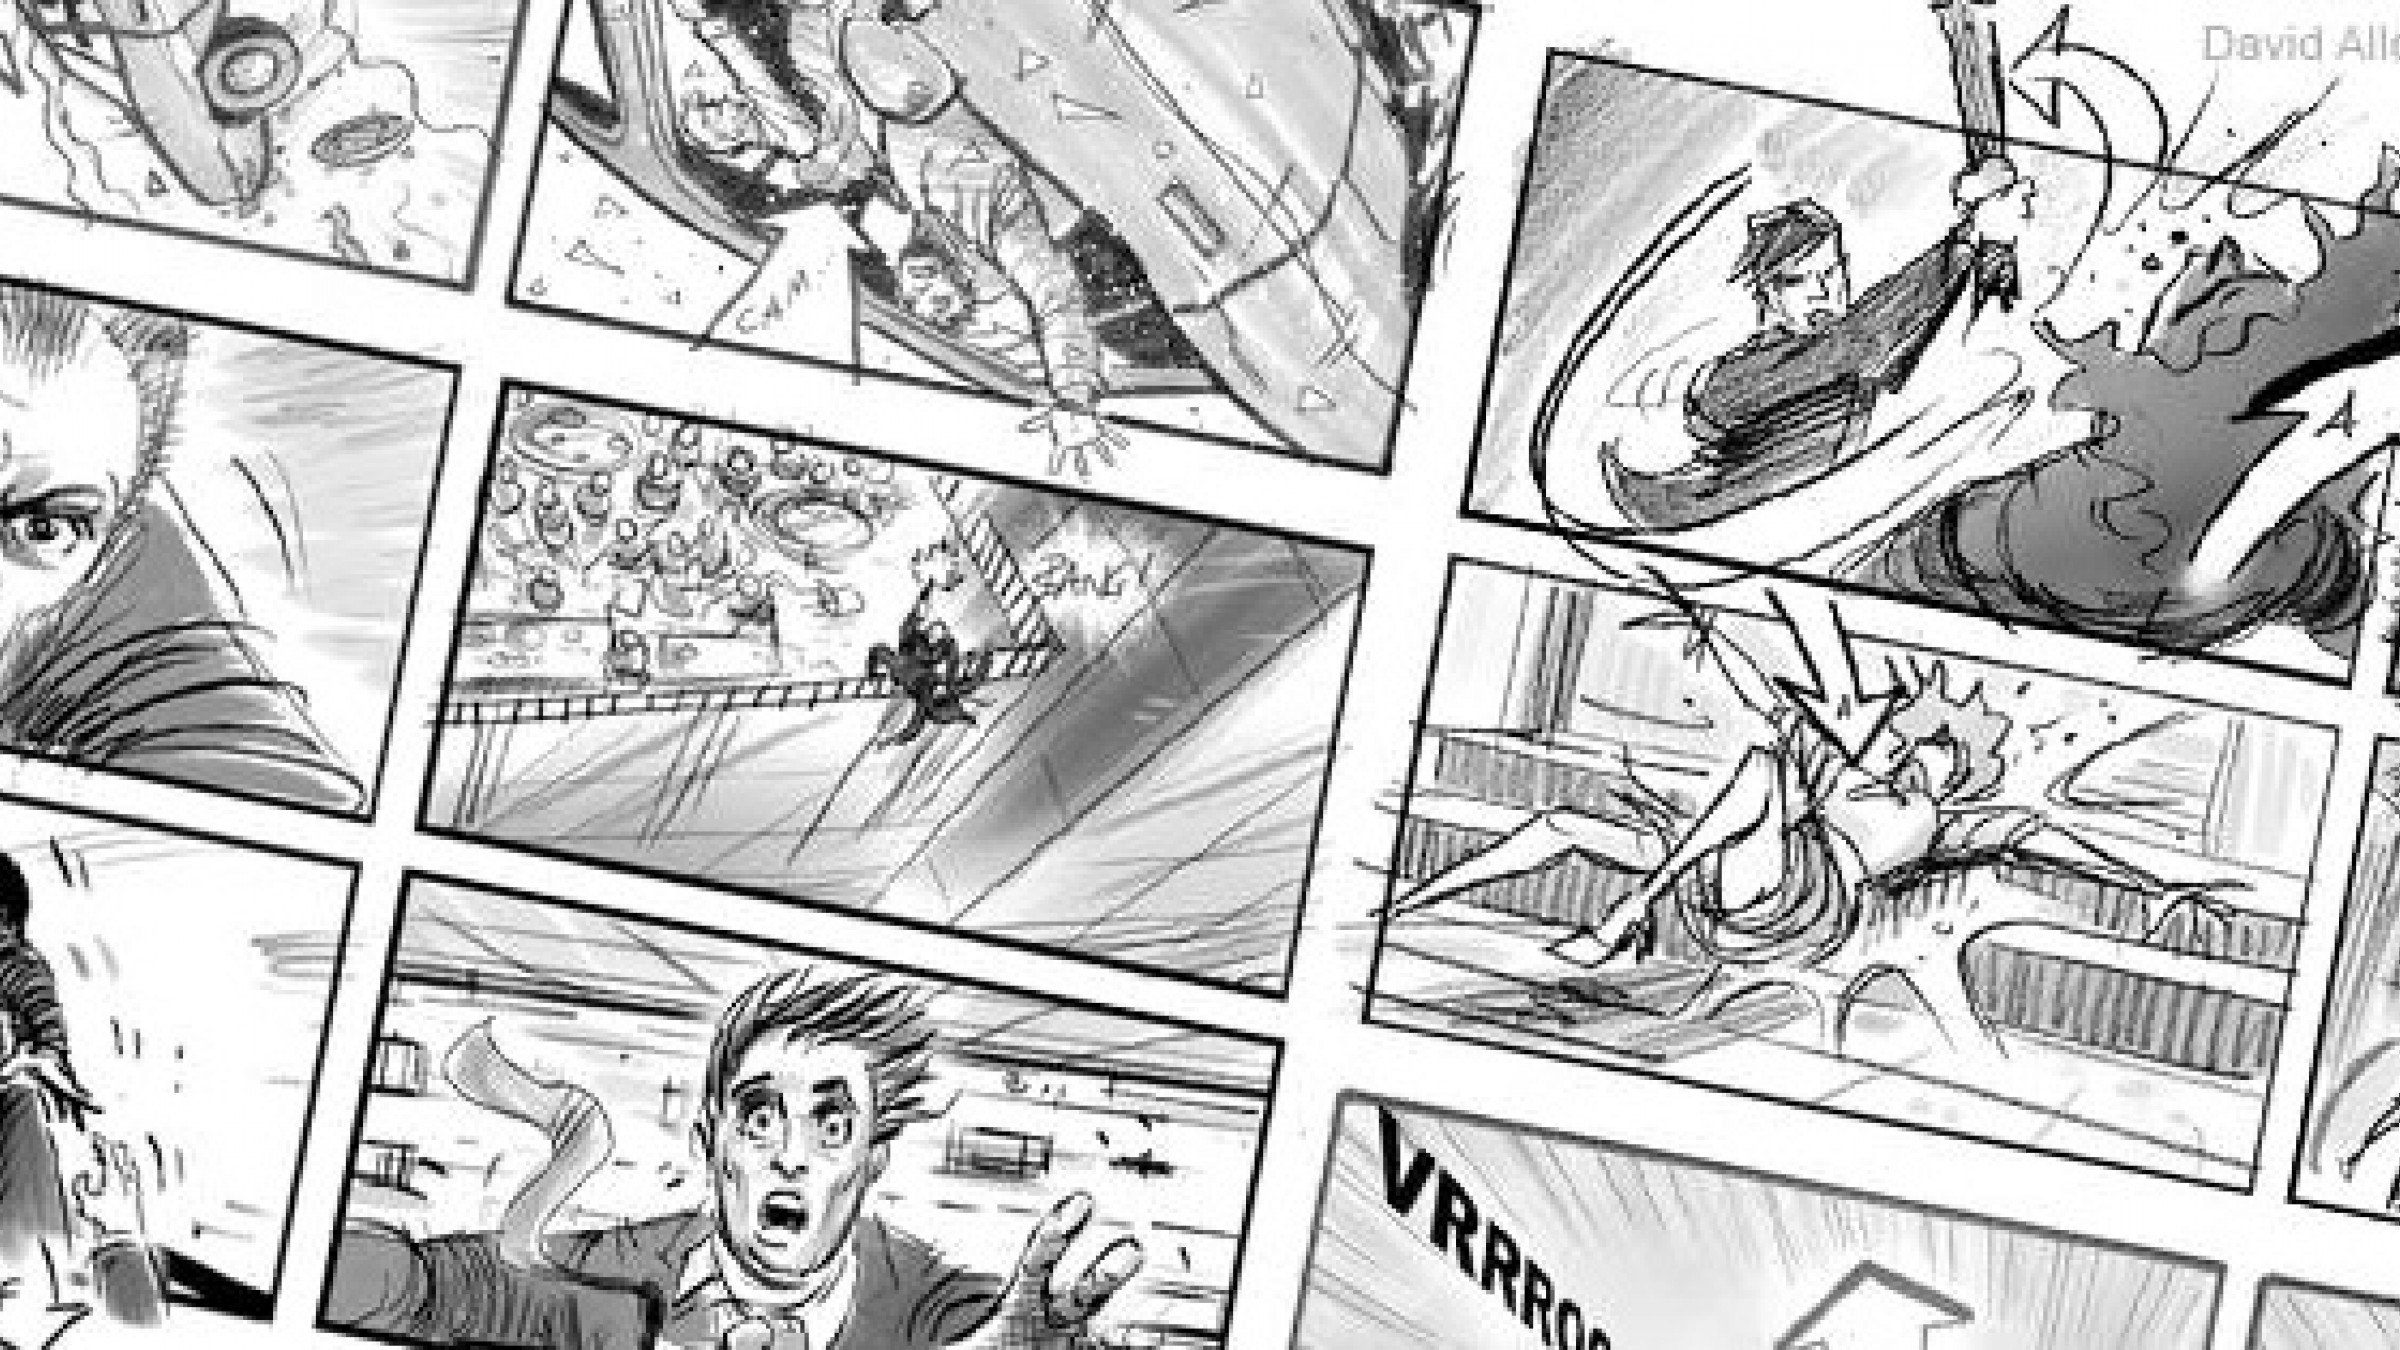 Need a Storyboard Artist? This May Be the Best Directory of